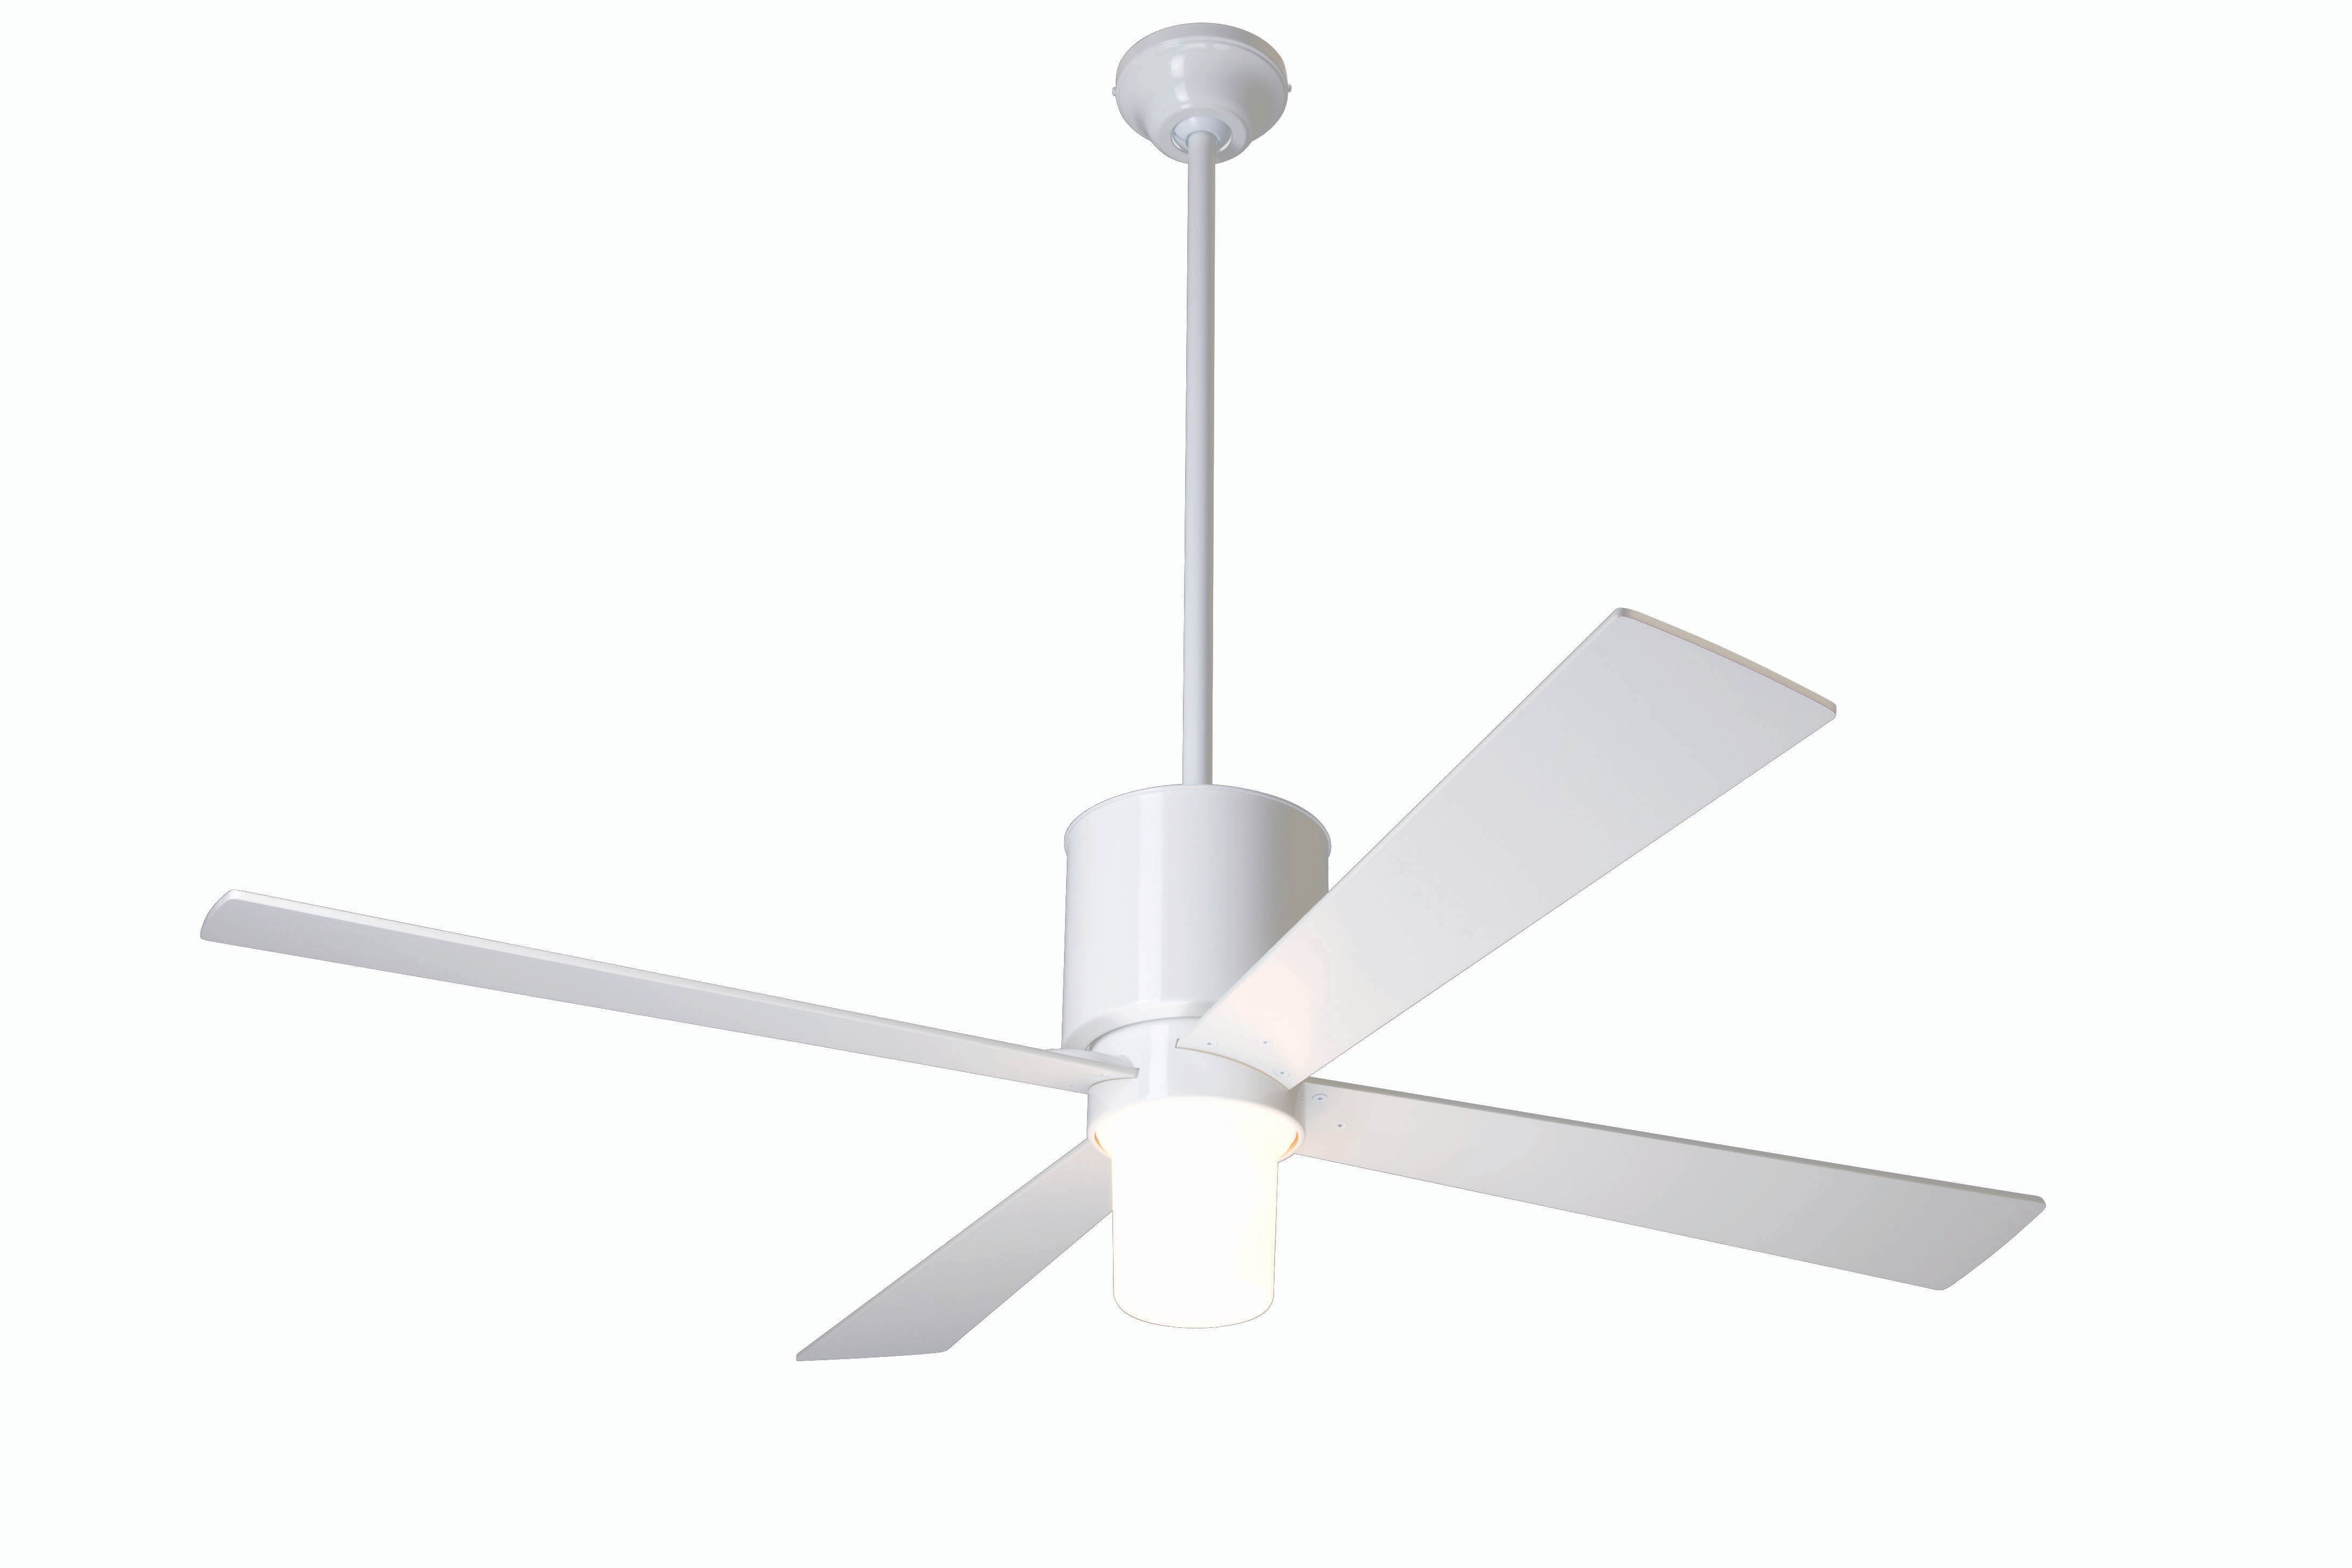 Modern fan company lap gw 52 wh 551 005 lapa gloss white ceiling fan - Modern white ceiling fan ...